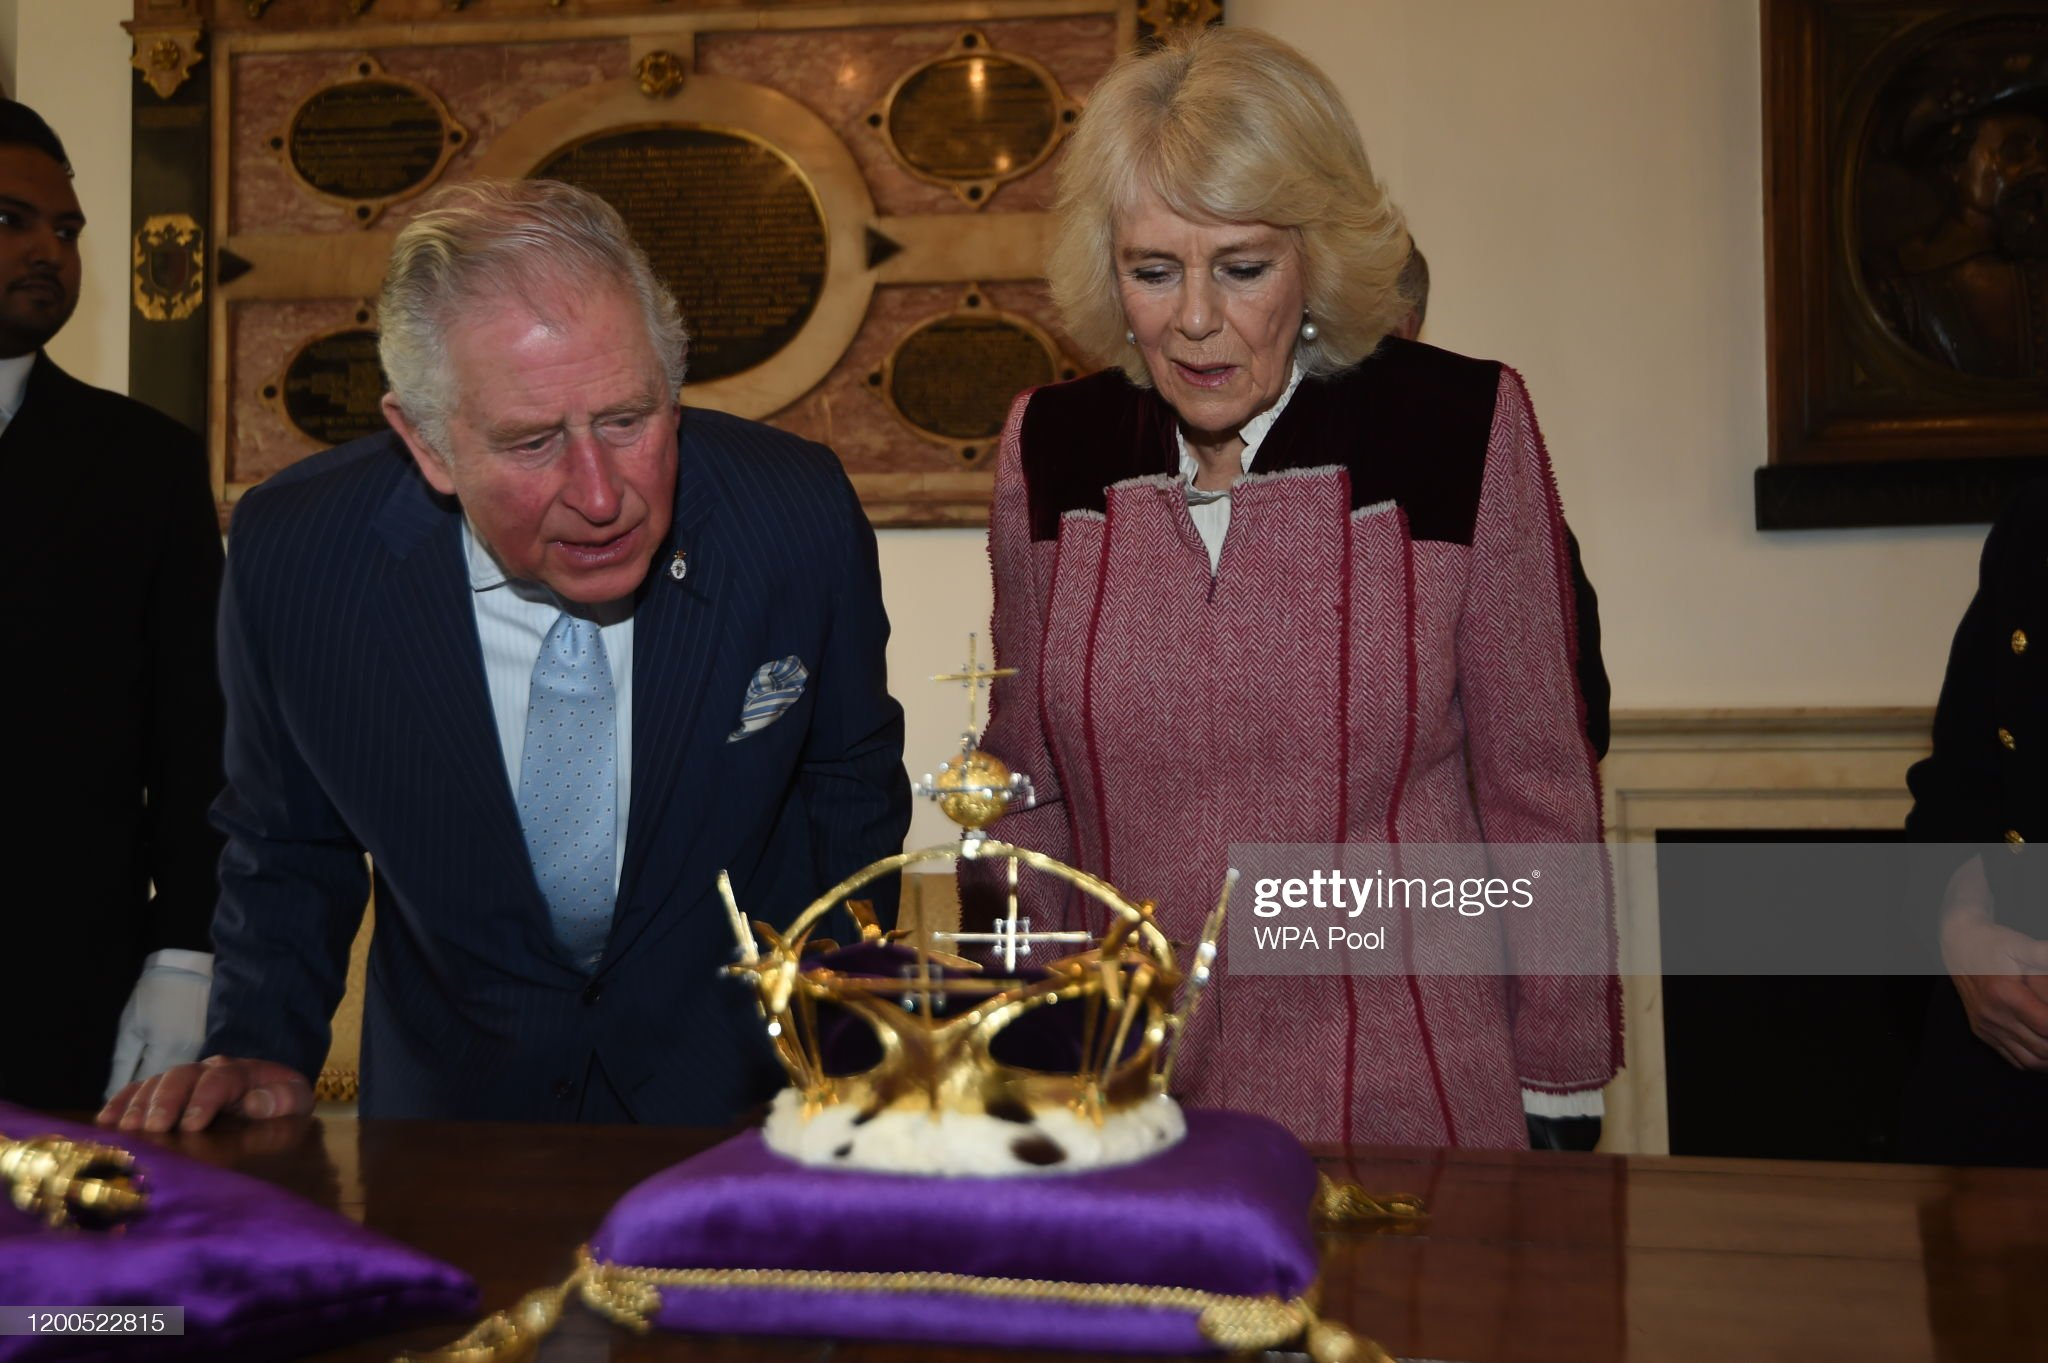 prince-charles-prince-of-wales-and-camilla-duchess-of-cornwall-visit-picture-id1200522815